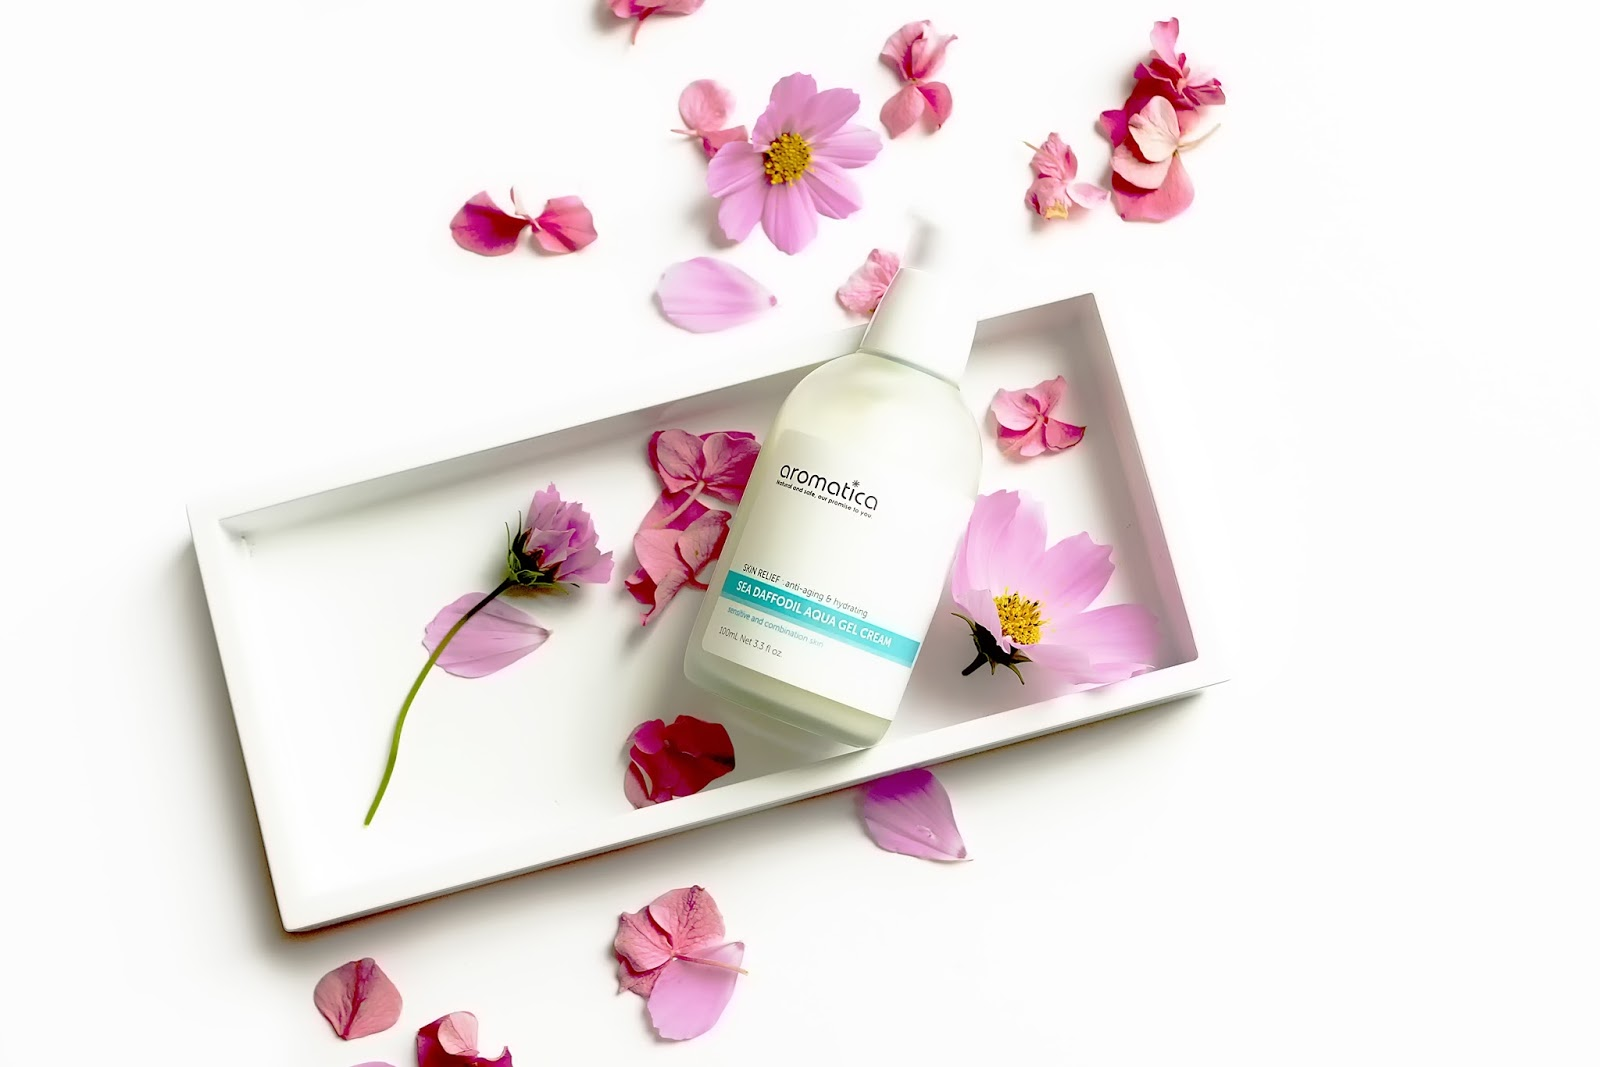 barely-there-beauty-korean-skincare-aromatica-sea-daffodil-review